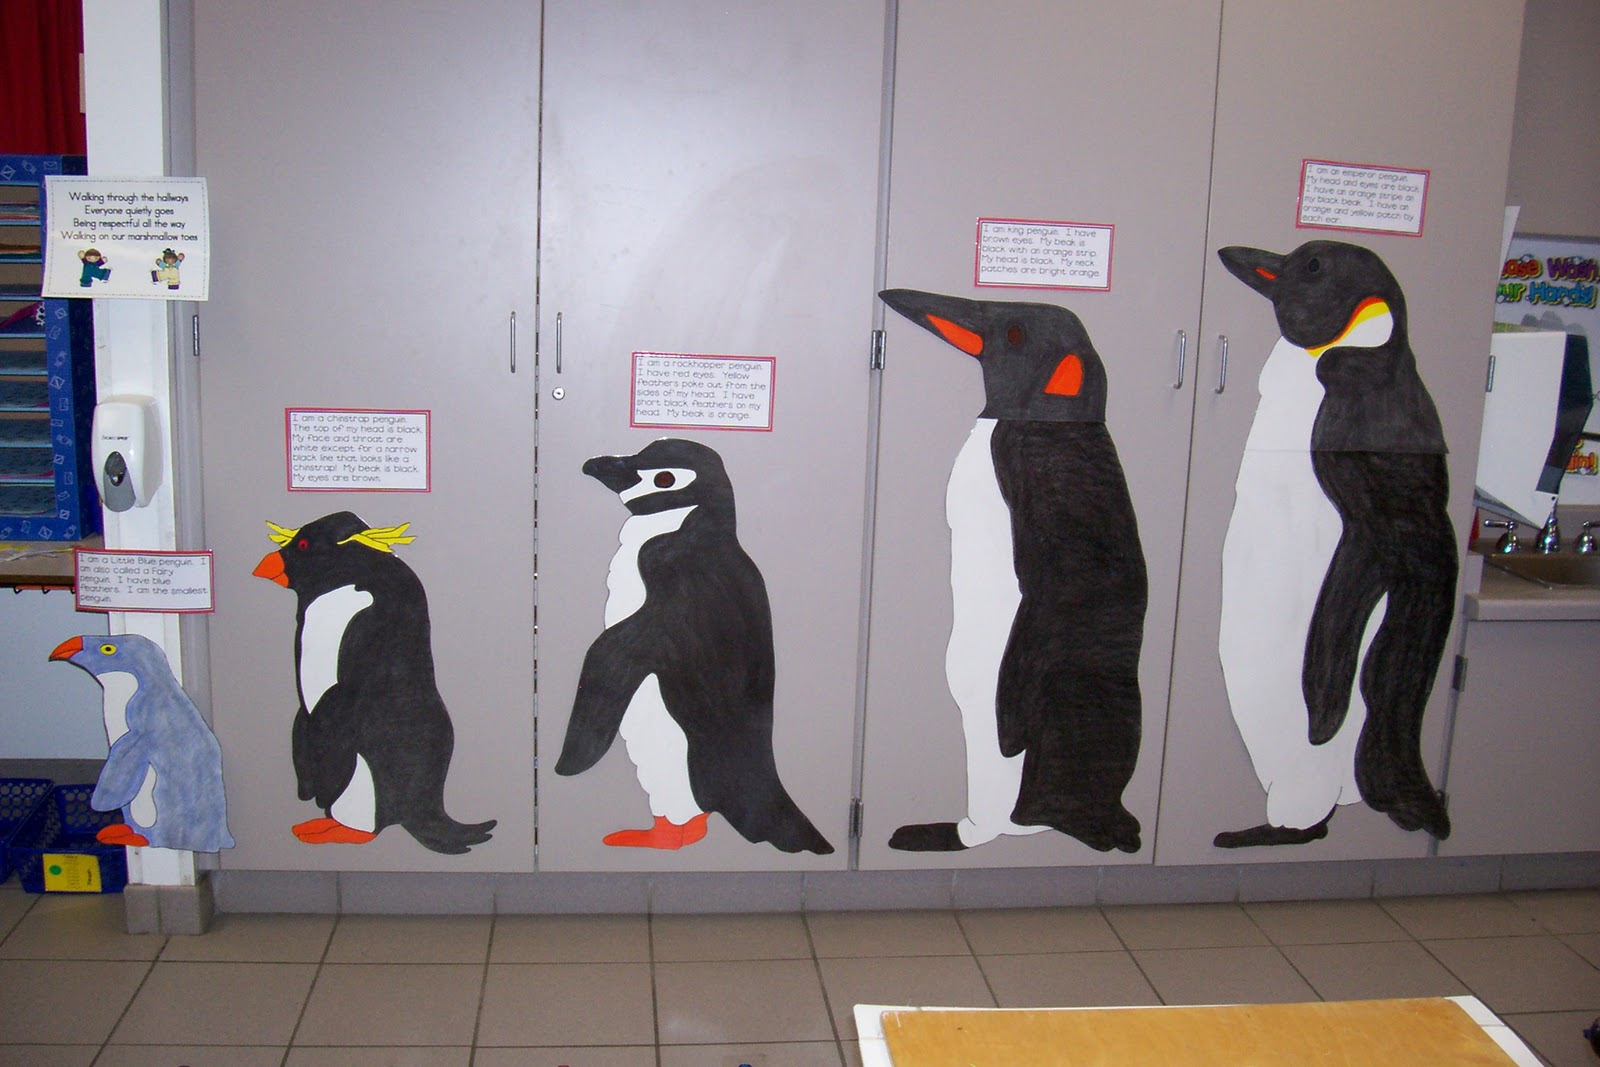 Emperor penguin size comparison - photo#7